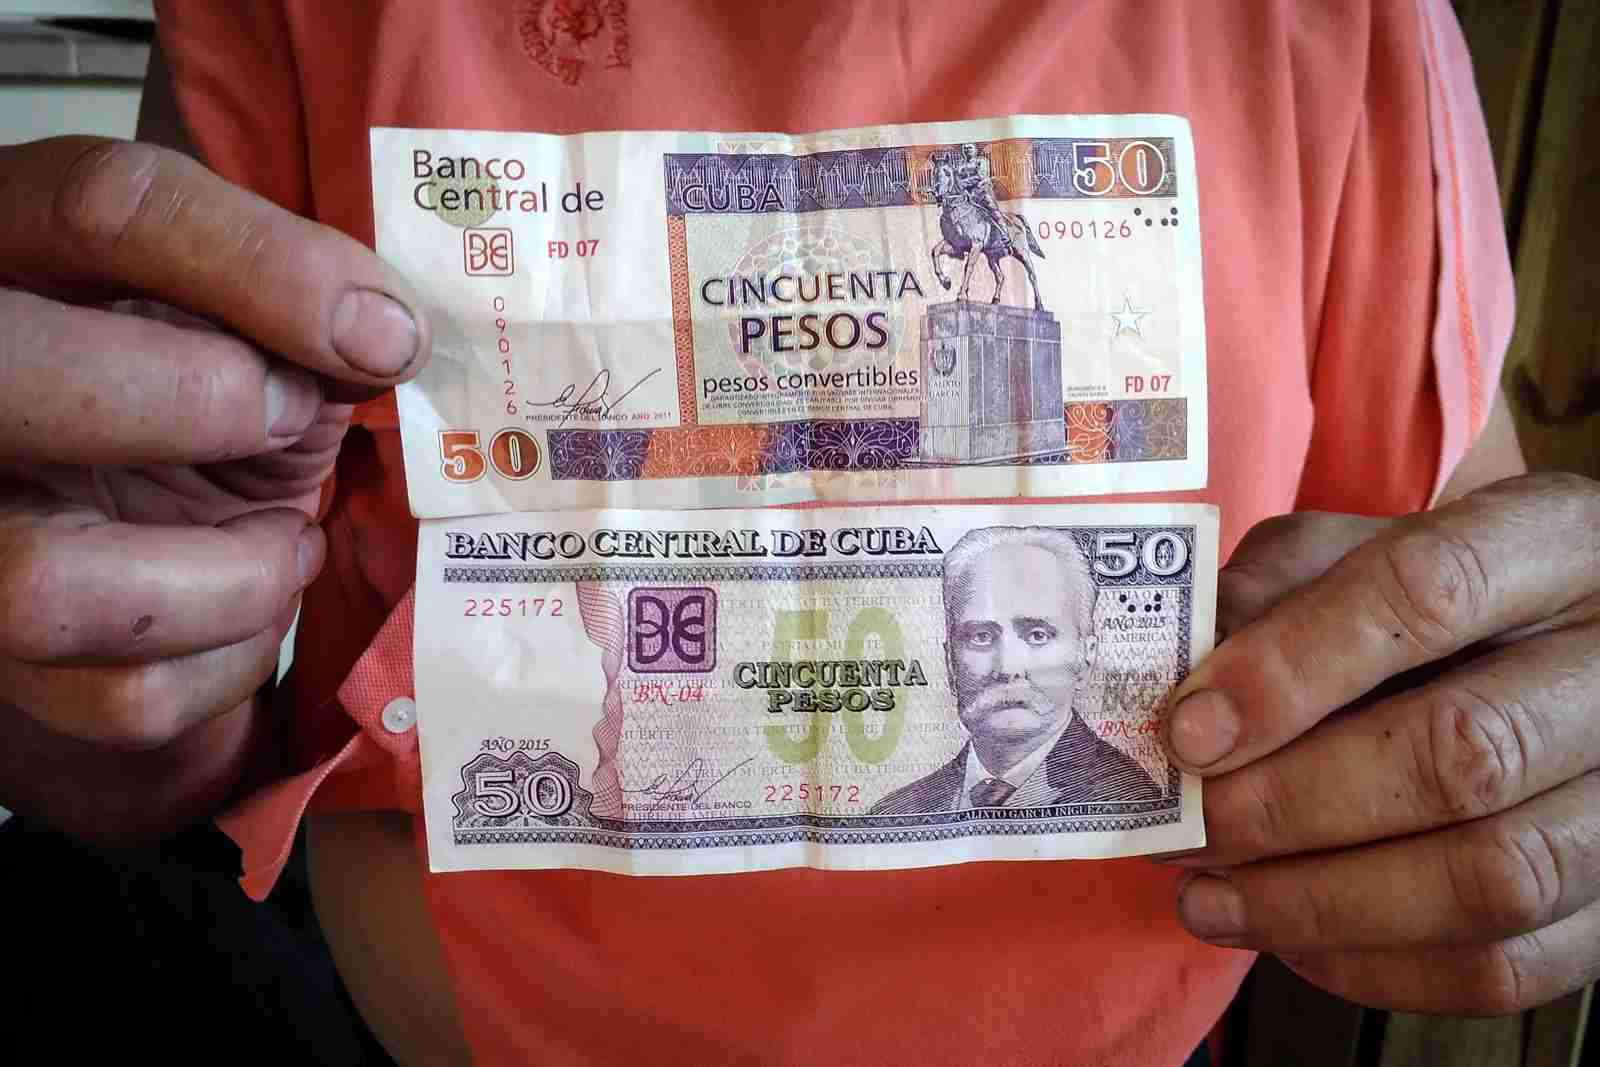 50 CUP (Cuban pesos; bottom) and 50 CUC (Cuban convertible pesos; top). (Photo by ADALBERTO ROQUE/AFP/Getty Images)